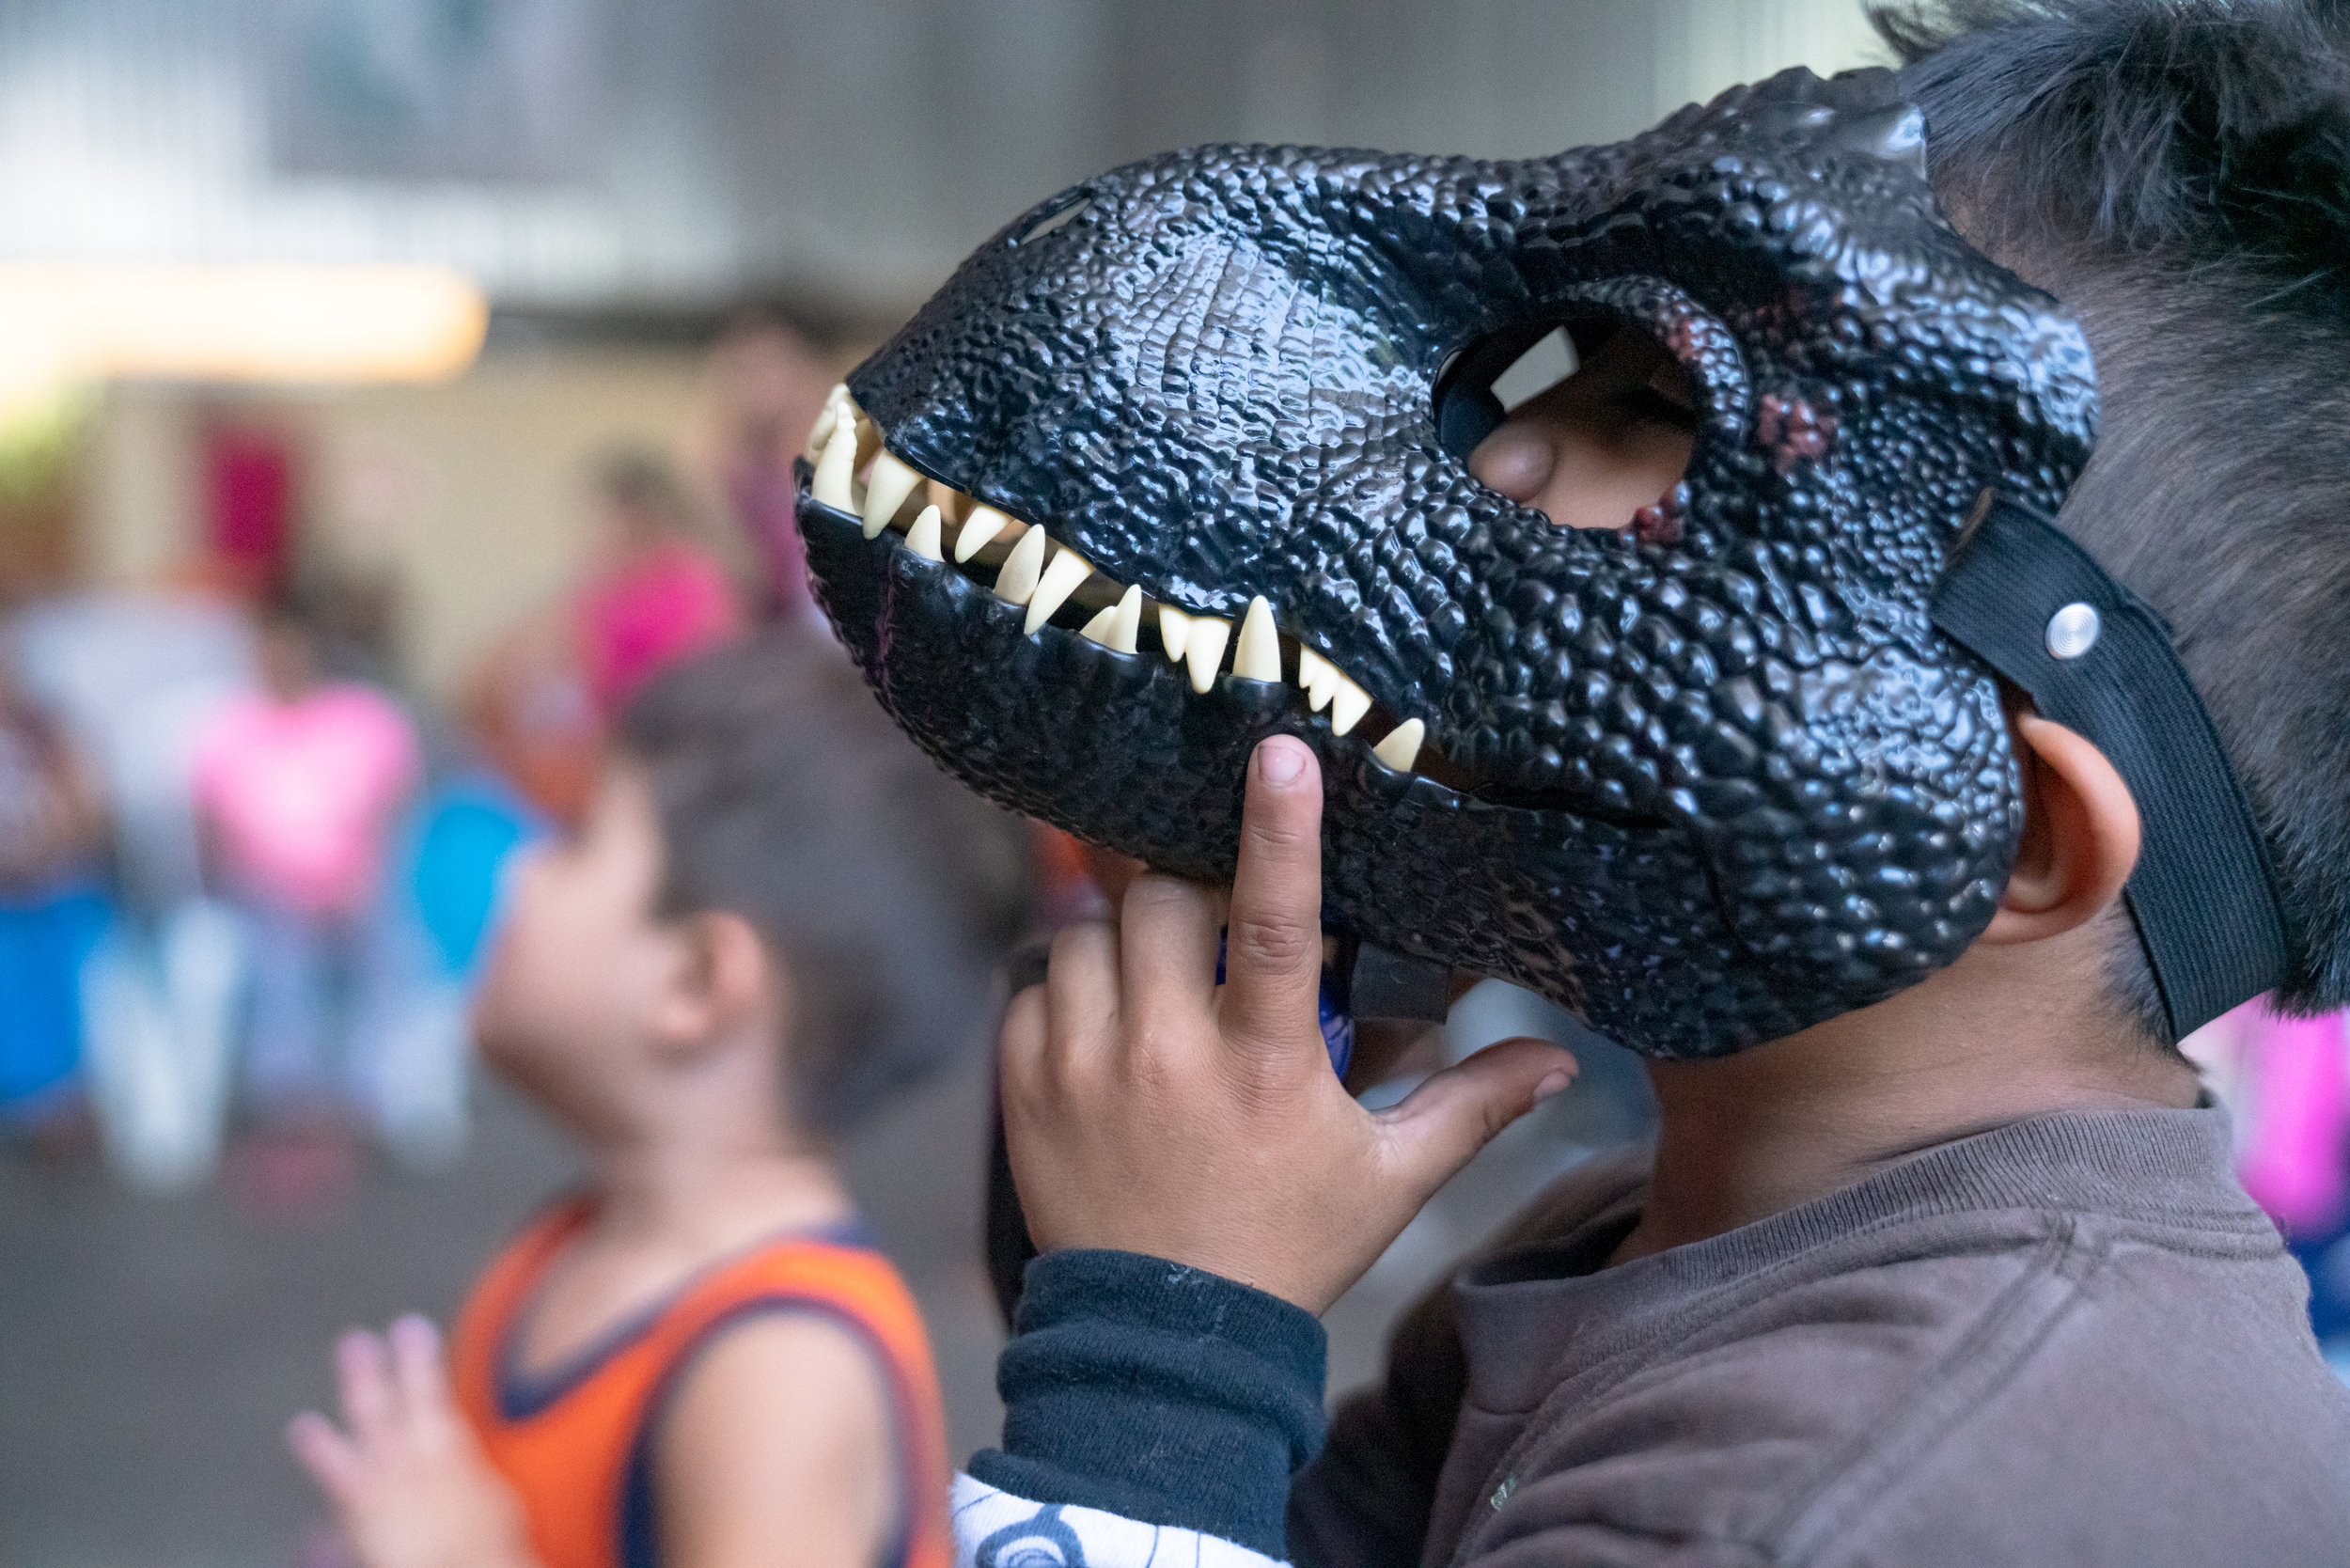 A young boy wears his dinosaur mask in a refugee shelter.